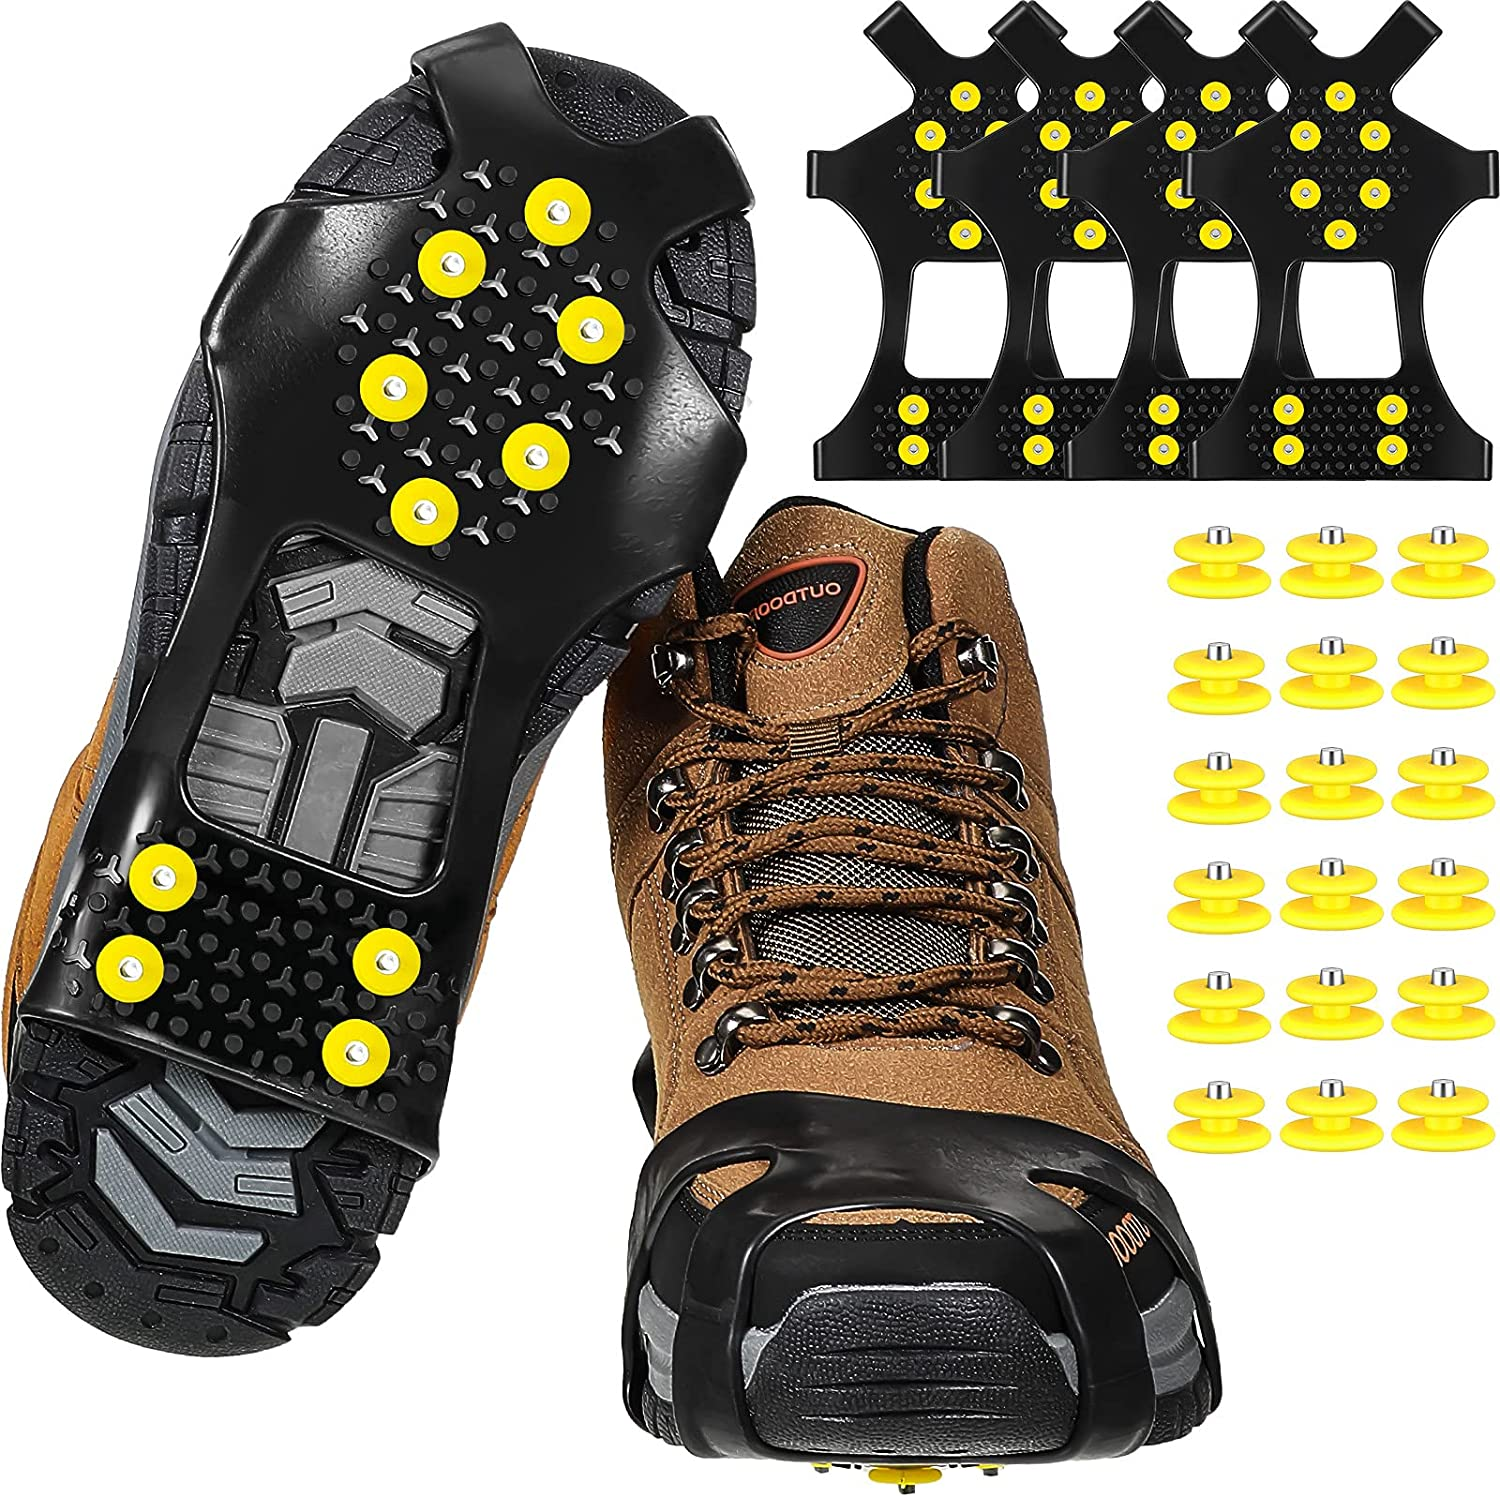 2 Pairs Ice Snow Grippers Max 78% OFF Cleats Max 56% OFF Traction Crampons Anti-Slip